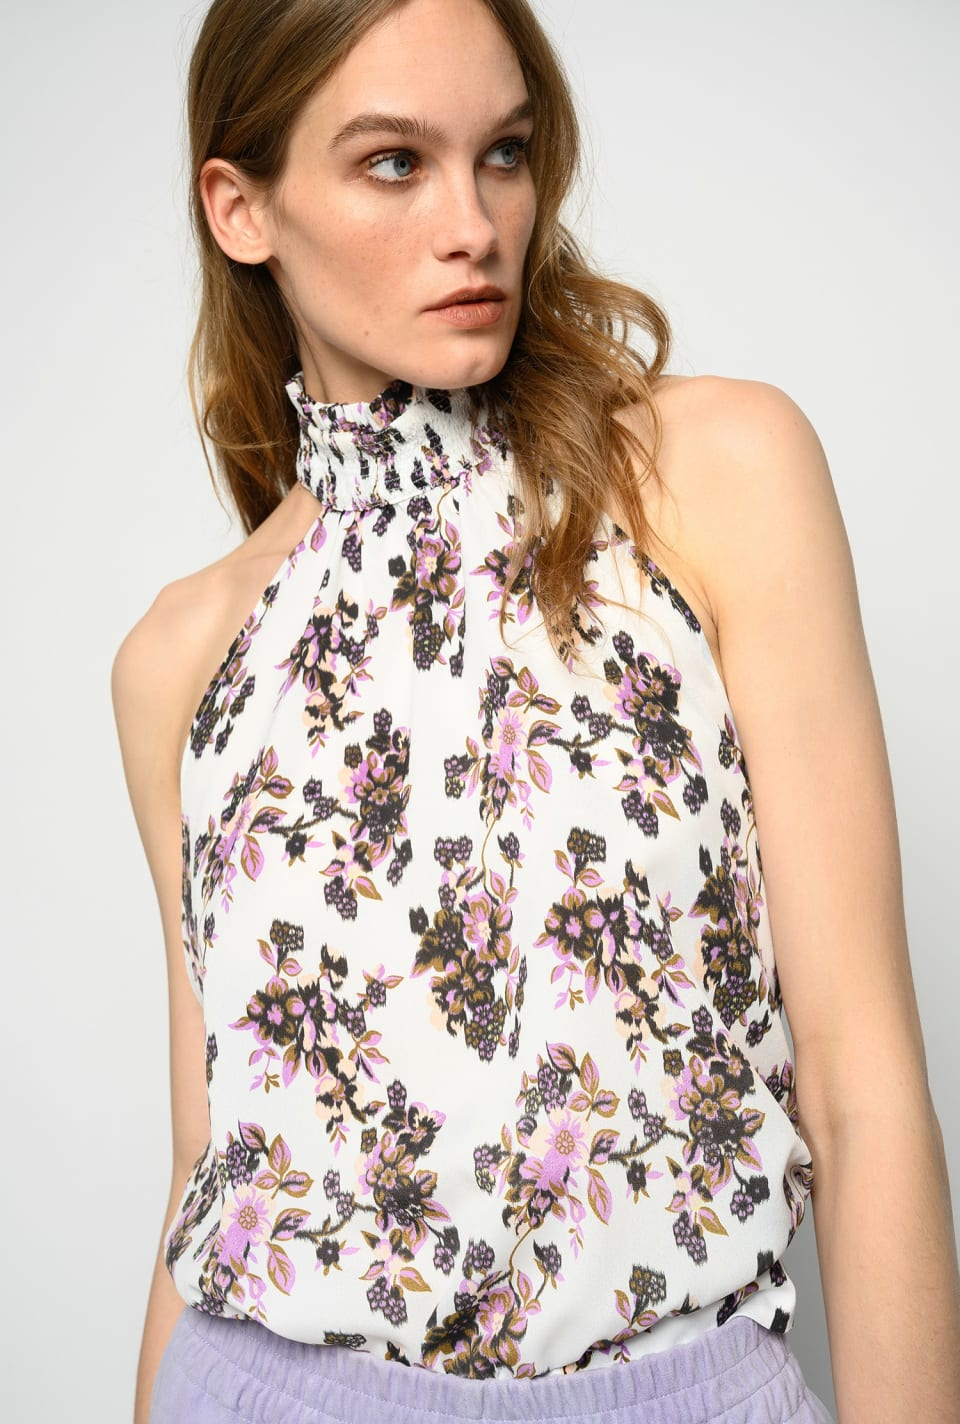 Floral halter-neck top - Pinko